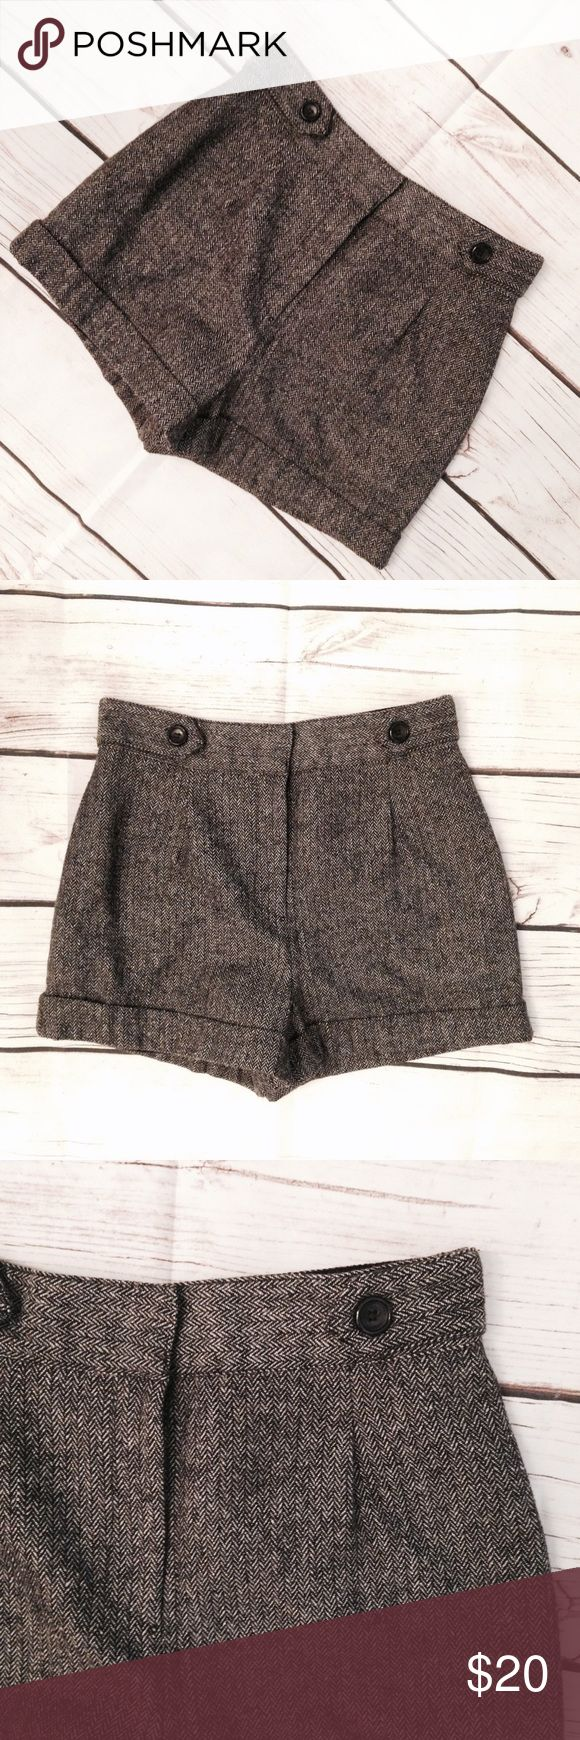 """Forever 21 Wool Tweed High Waisted Shorts Gear up for fall with these classic black & grey wool blended tweed shorts! Retro high waist fit with button accents on hips. Two side pockets; hook & eye and zipper closure. Fully lined. By Forever 21. Size M. Polyester/wool/acrylic/nylon/rayon/cotton blend. Waist measures 29"""". Rise 12.5"""". Length 14"""". Good pre-owned condition with no holes, rips, or stains.  KWs: indie, work chic, back to school, preppy, style crush, rockabilly, pinup, weekend…"""